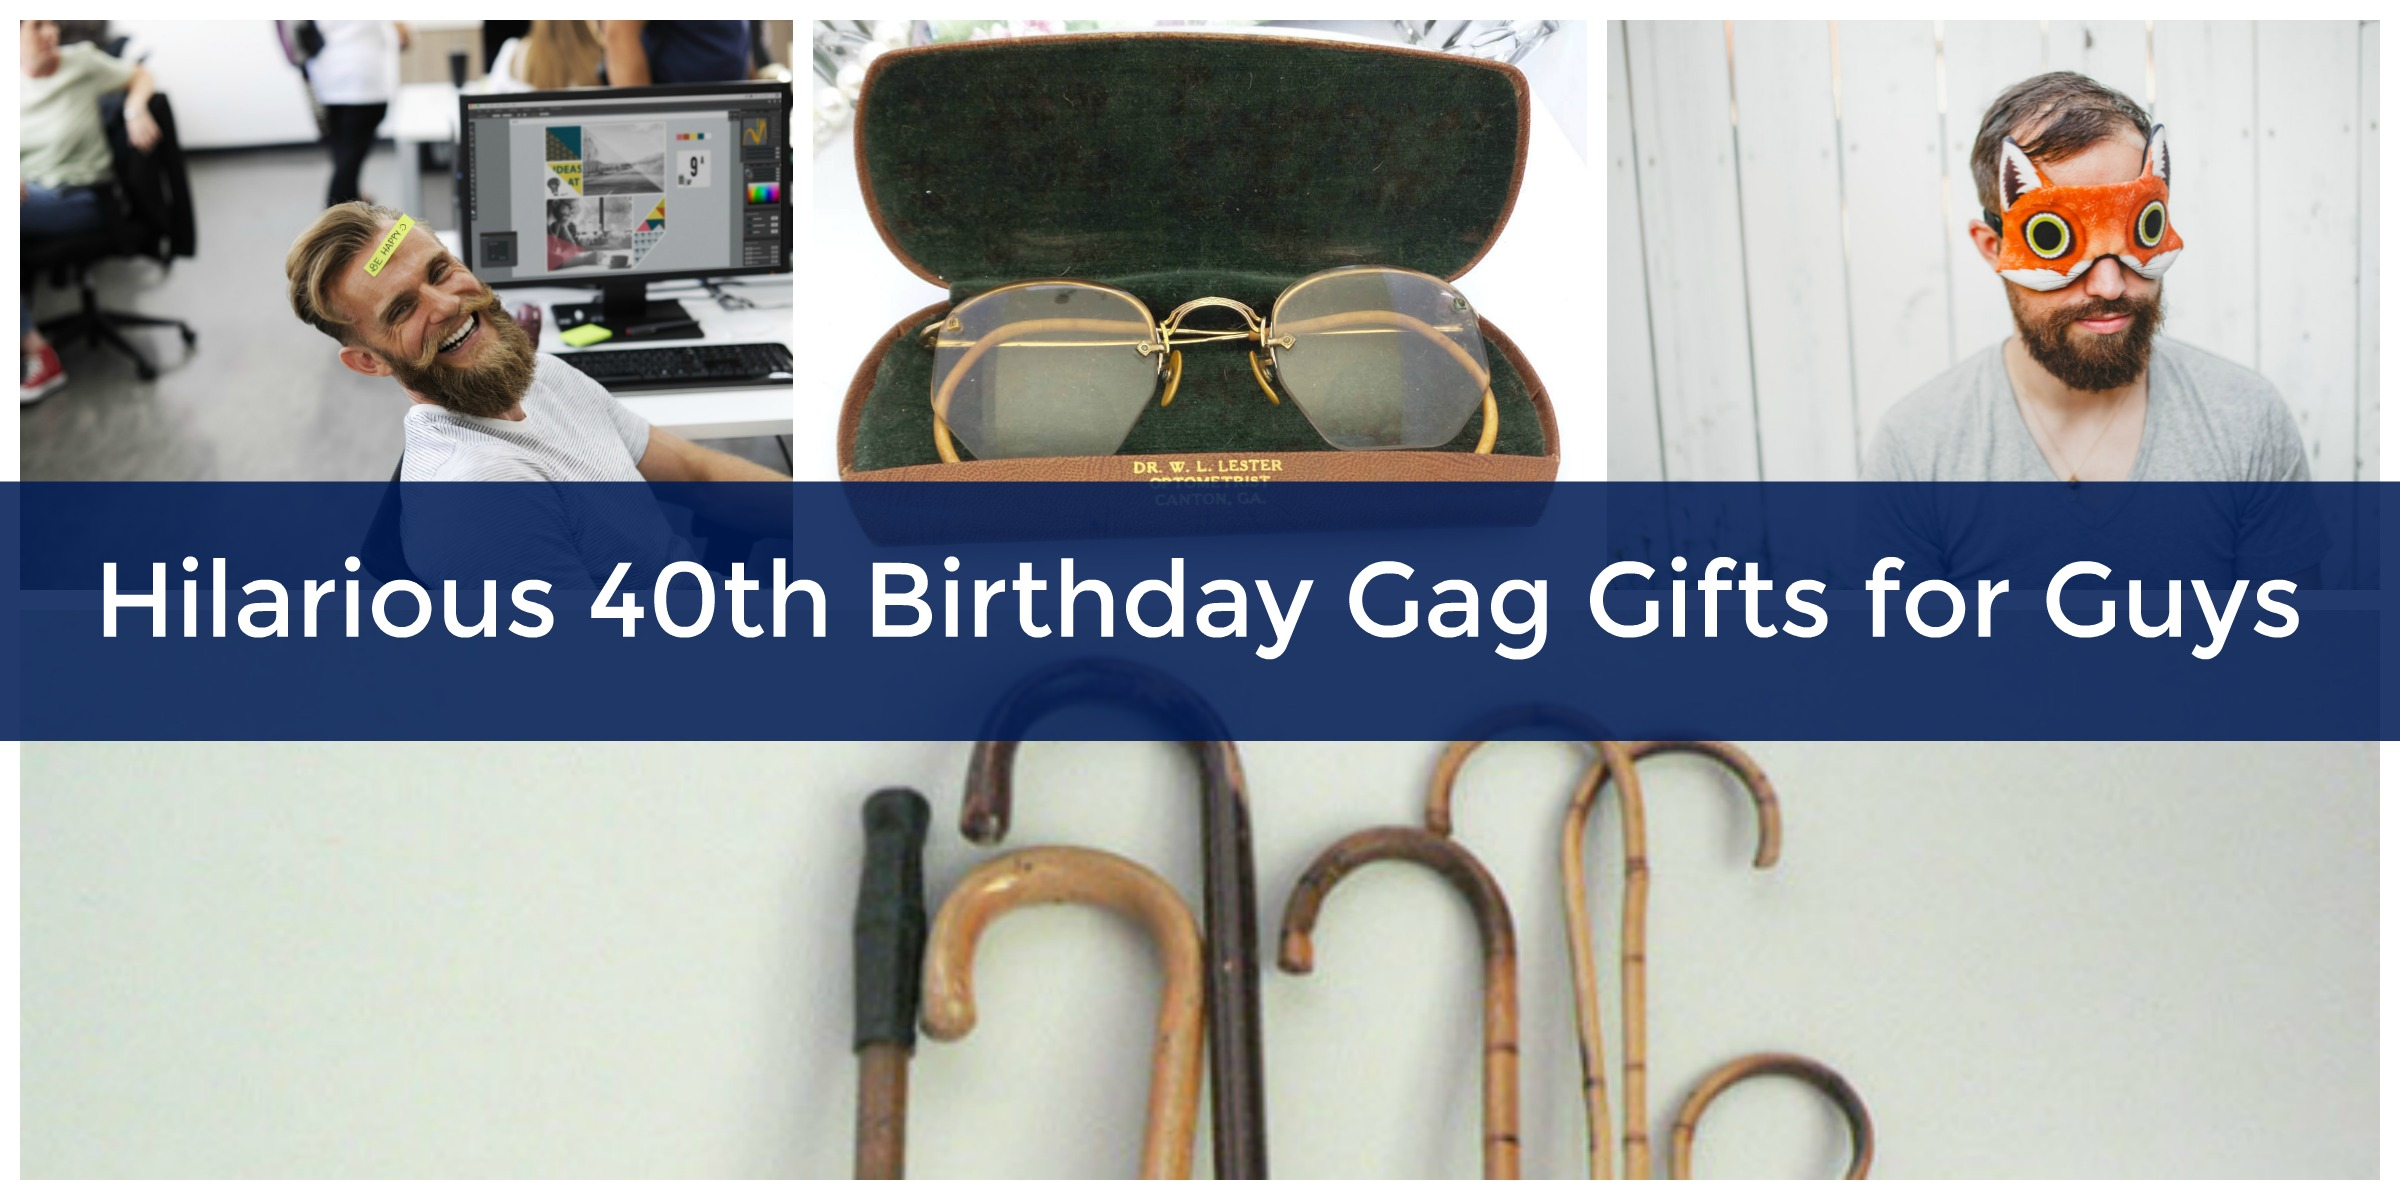 Hilariously Funny 40th Birthday Gag Gifts For Guys